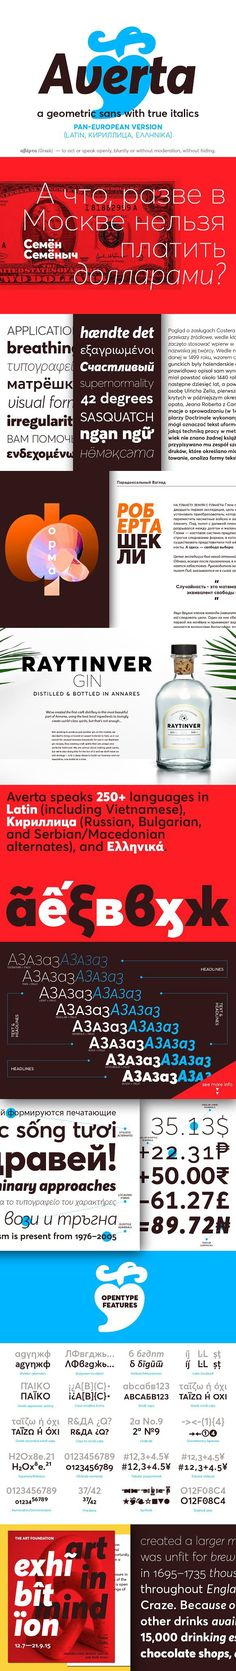 Bringing together features from early European grotesques and American gothics, Kostas Bartokas' Averta (Greek: 'αβέρτα' – to act or speak openly, bluntly or Superior Inferior, Gothic Fonts, Small Caps, American Gothic, Sans Serif Fonts, Cool Fonts, Glyphs, Editorial Design, Signage